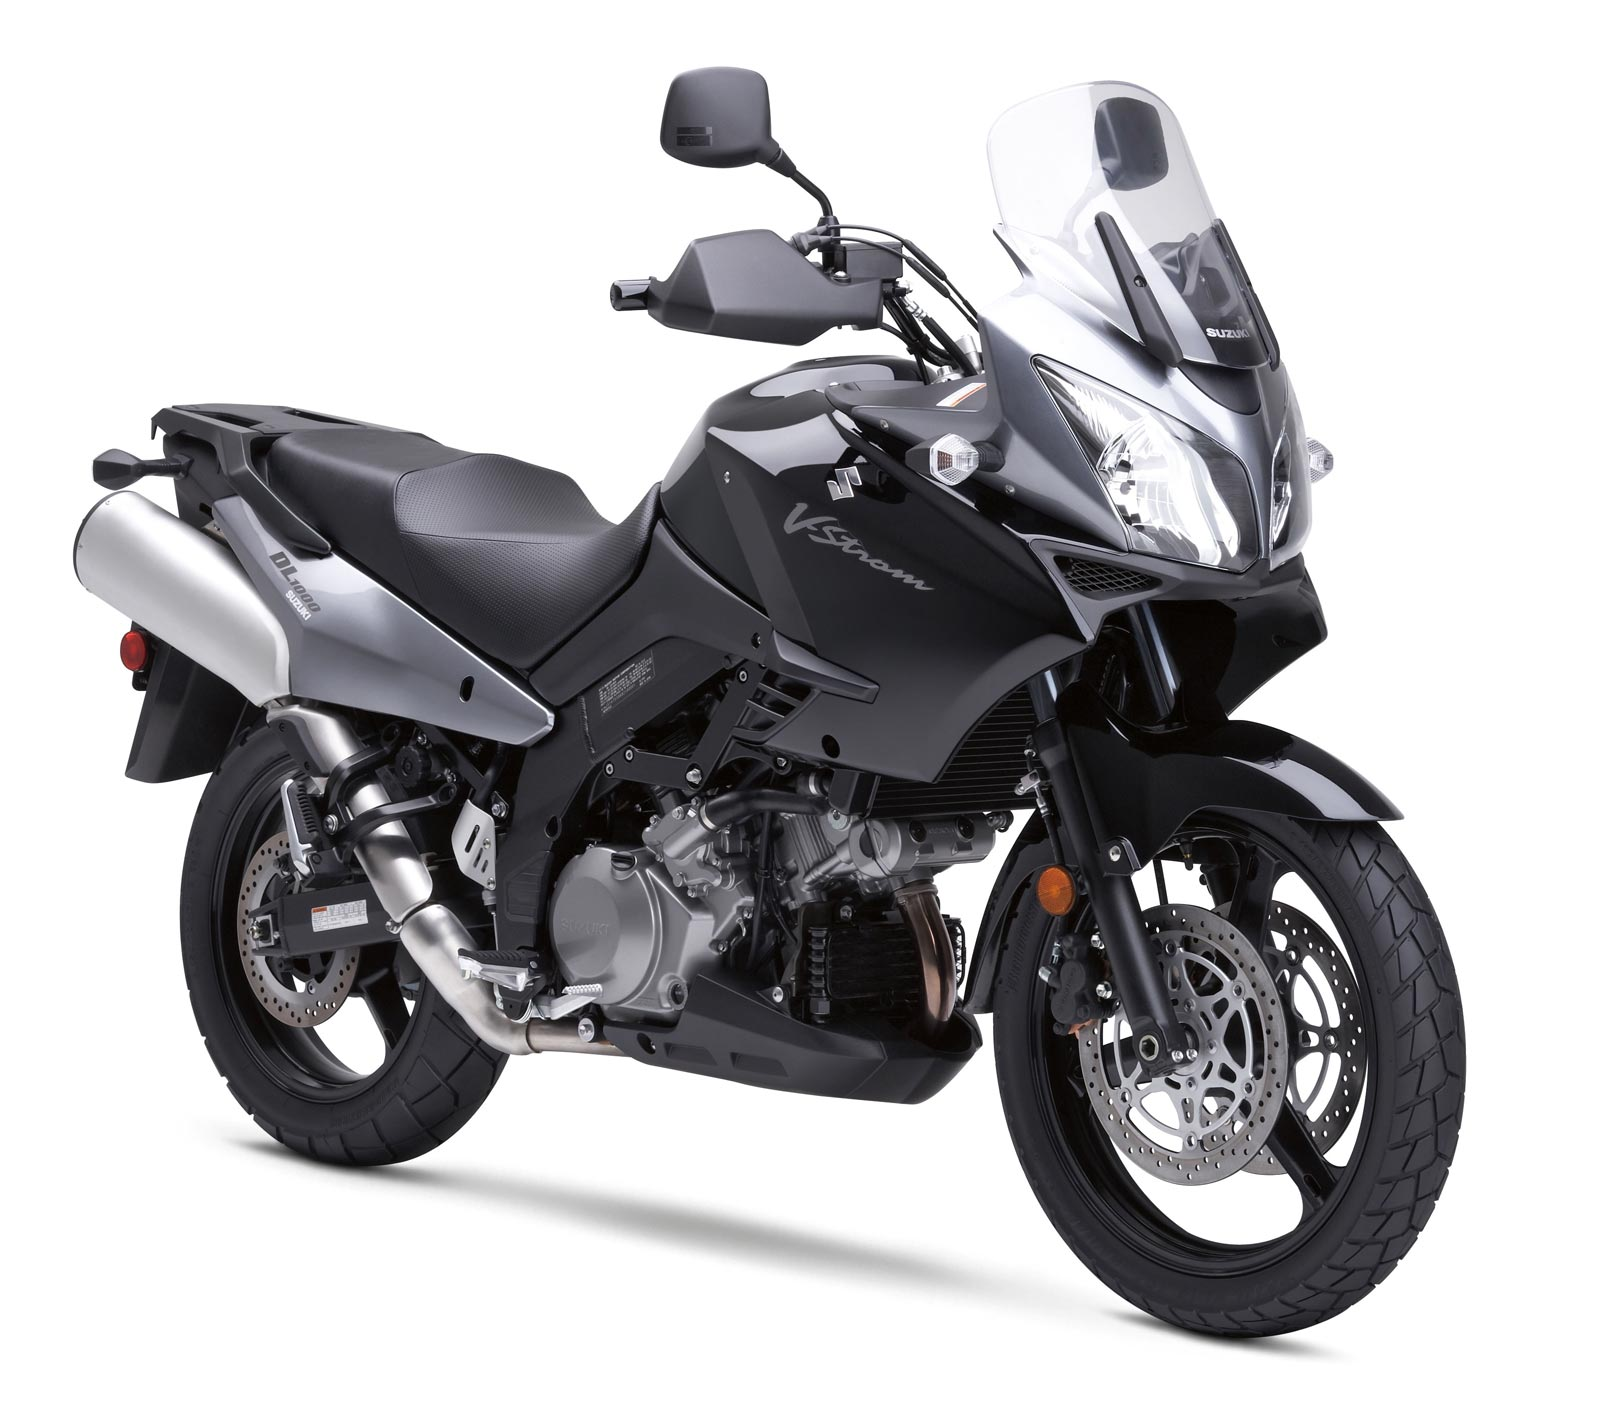 2008 suzuki v strom 1000 dl1000. Black Bedroom Furniture Sets. Home Design Ideas